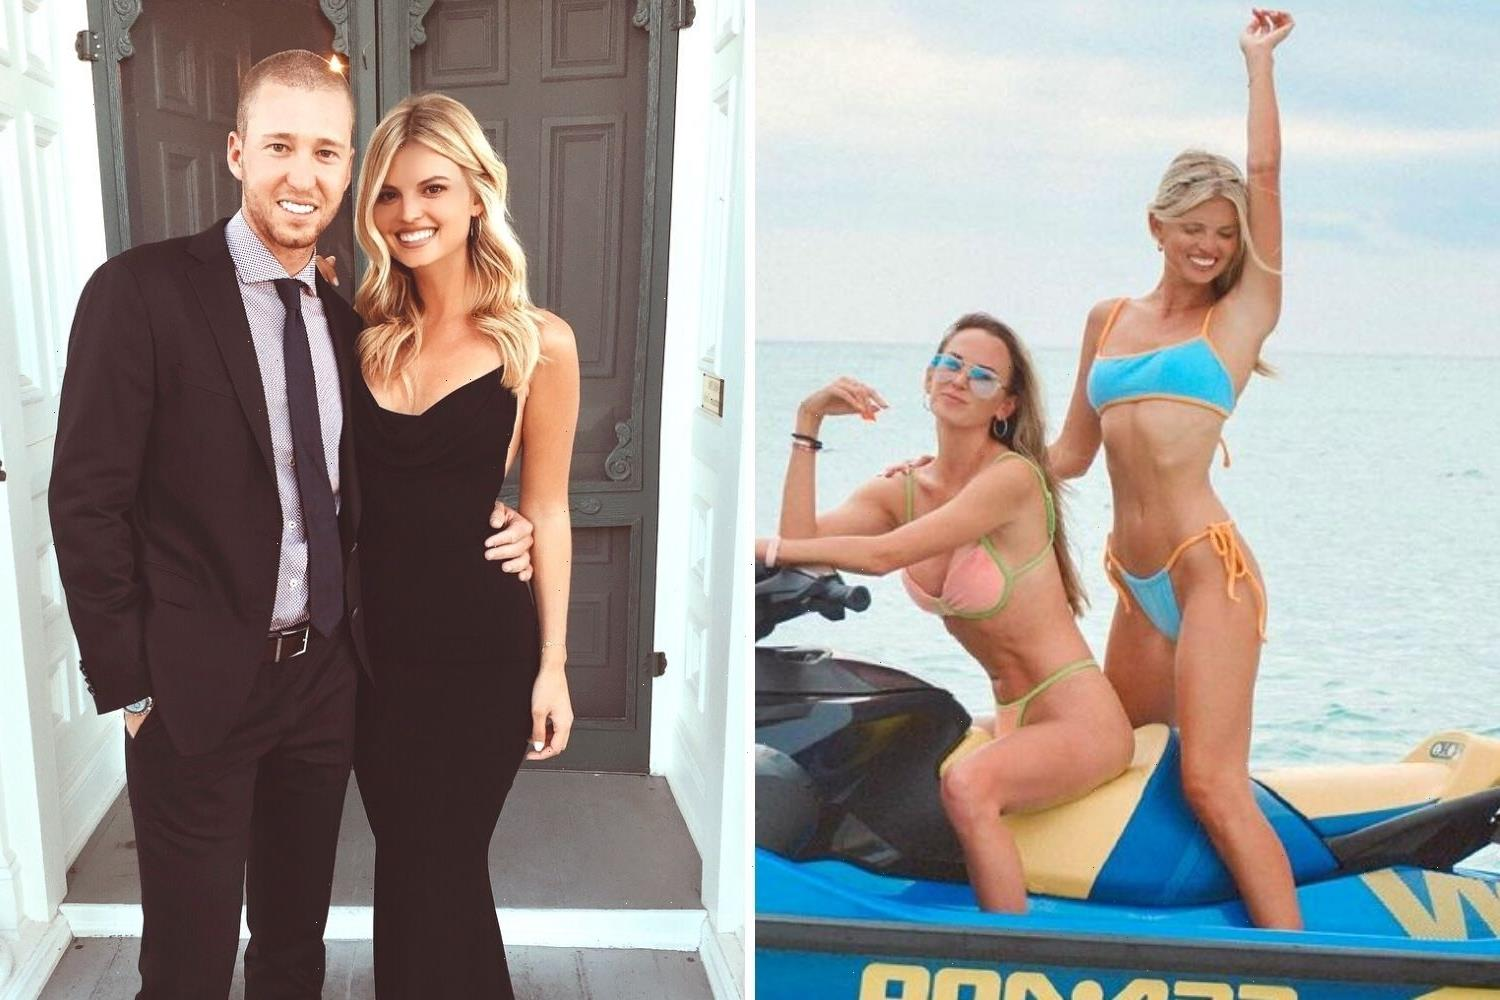 Who is Tori Slater? The 2019 US Open golfer Daniel Berger's girlfriend, and realtor in Florida